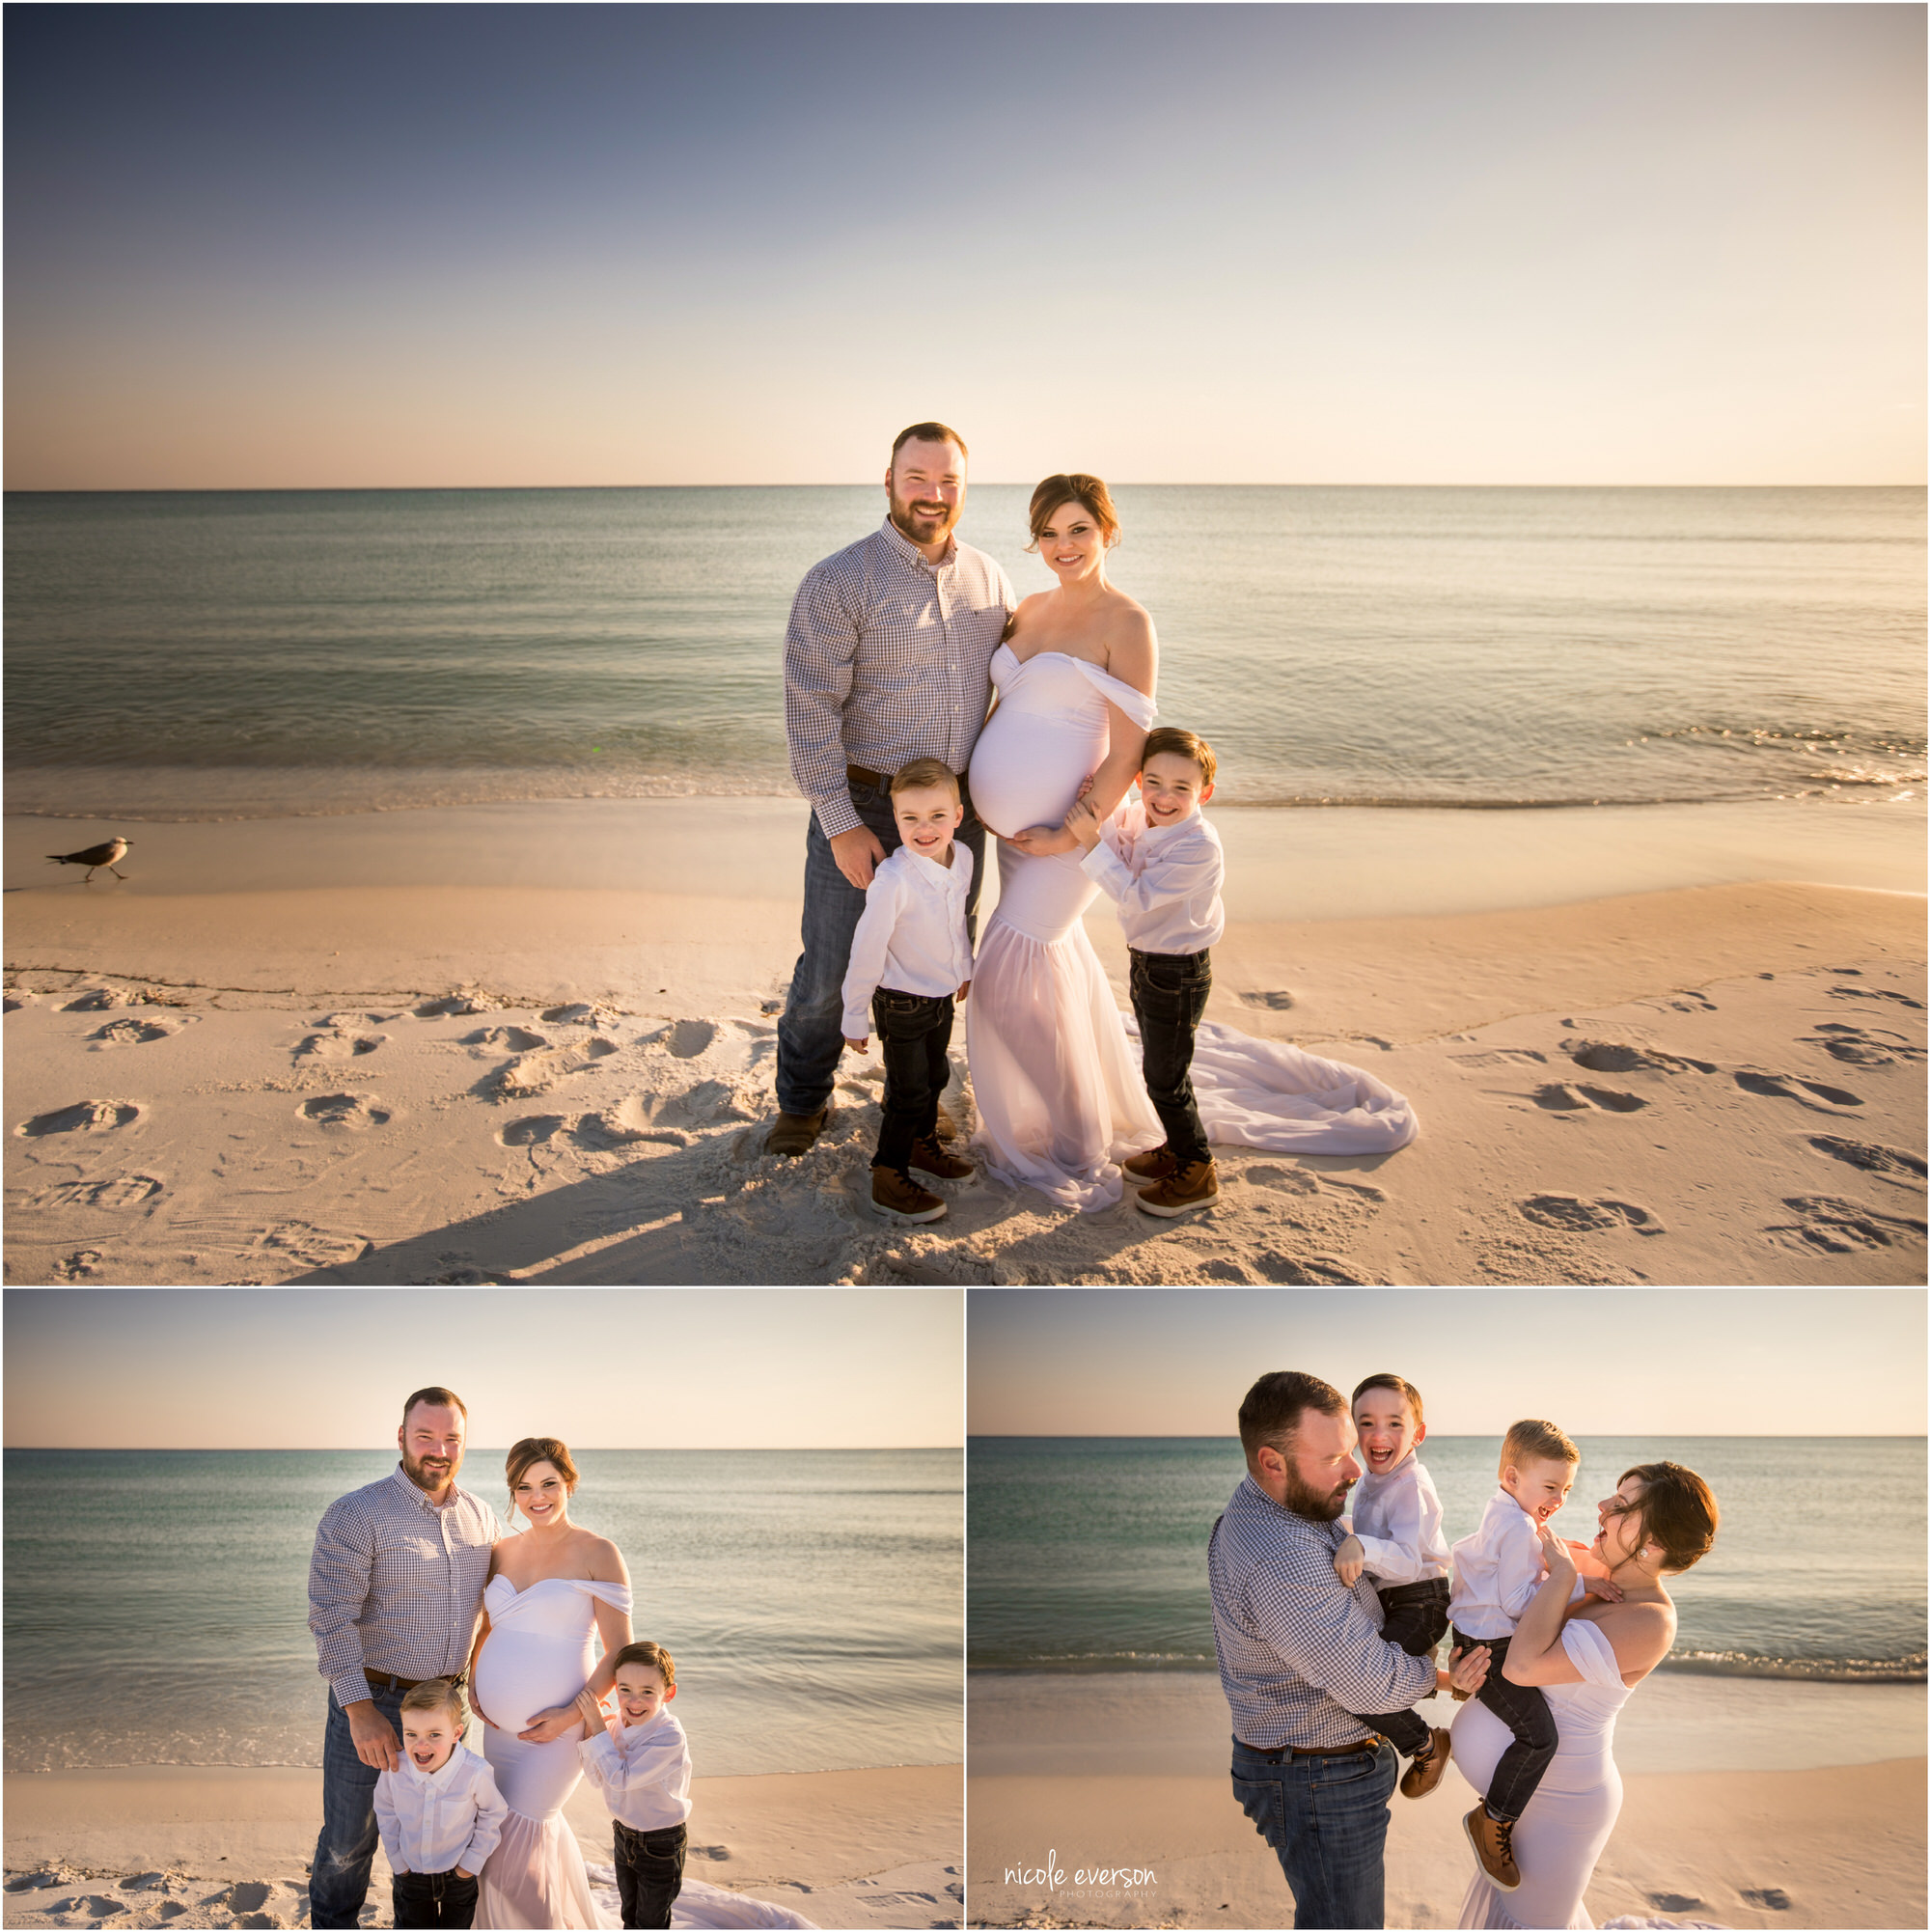 family photos taken on Destin beach